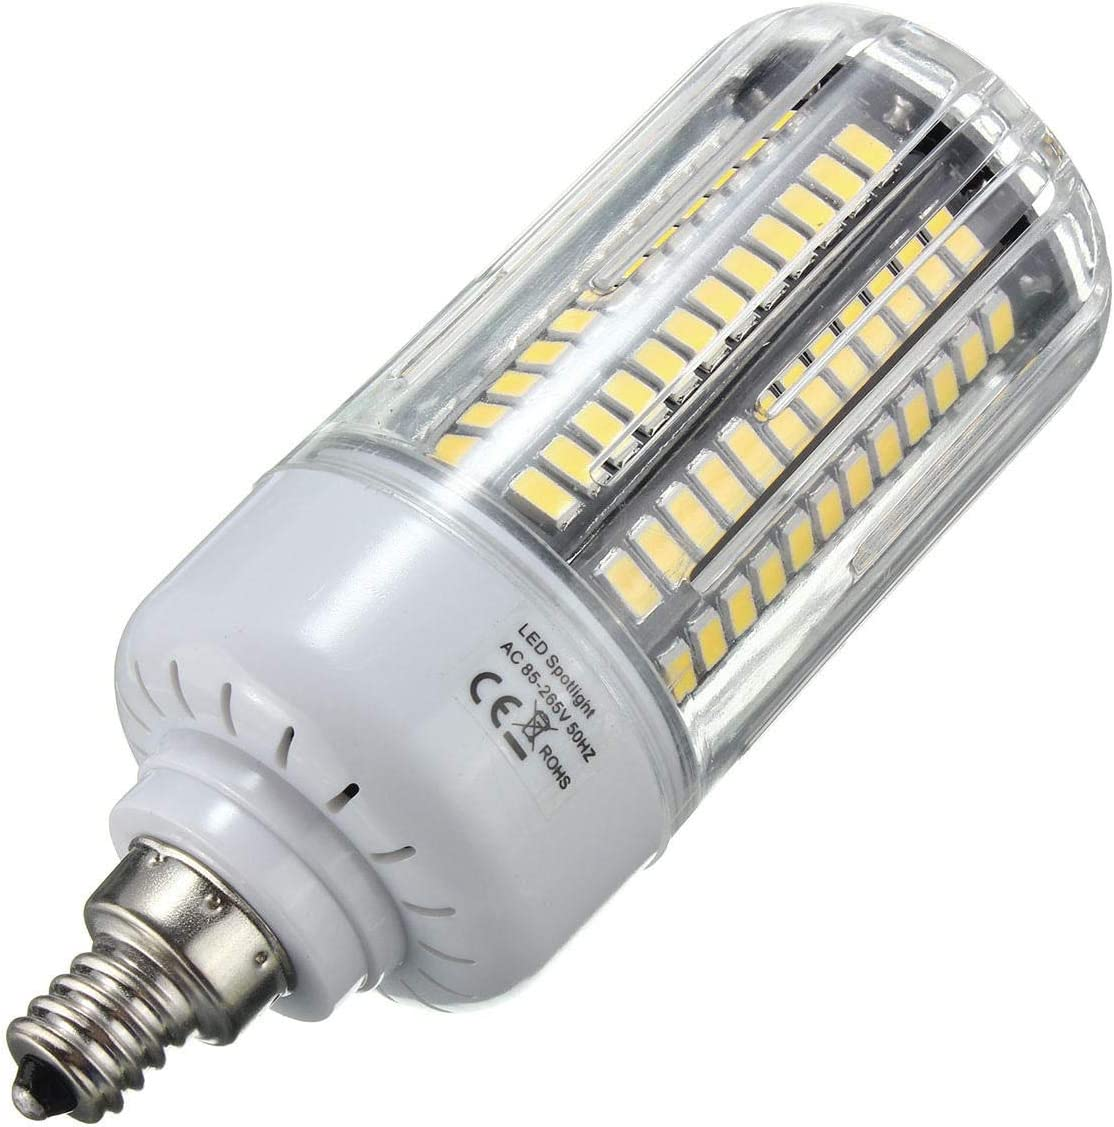 A surprise price is realized ZHU-CL LED Corn Max 73% OFF Light Bulb for 100 Indoor&Outdoor, S 18W E12